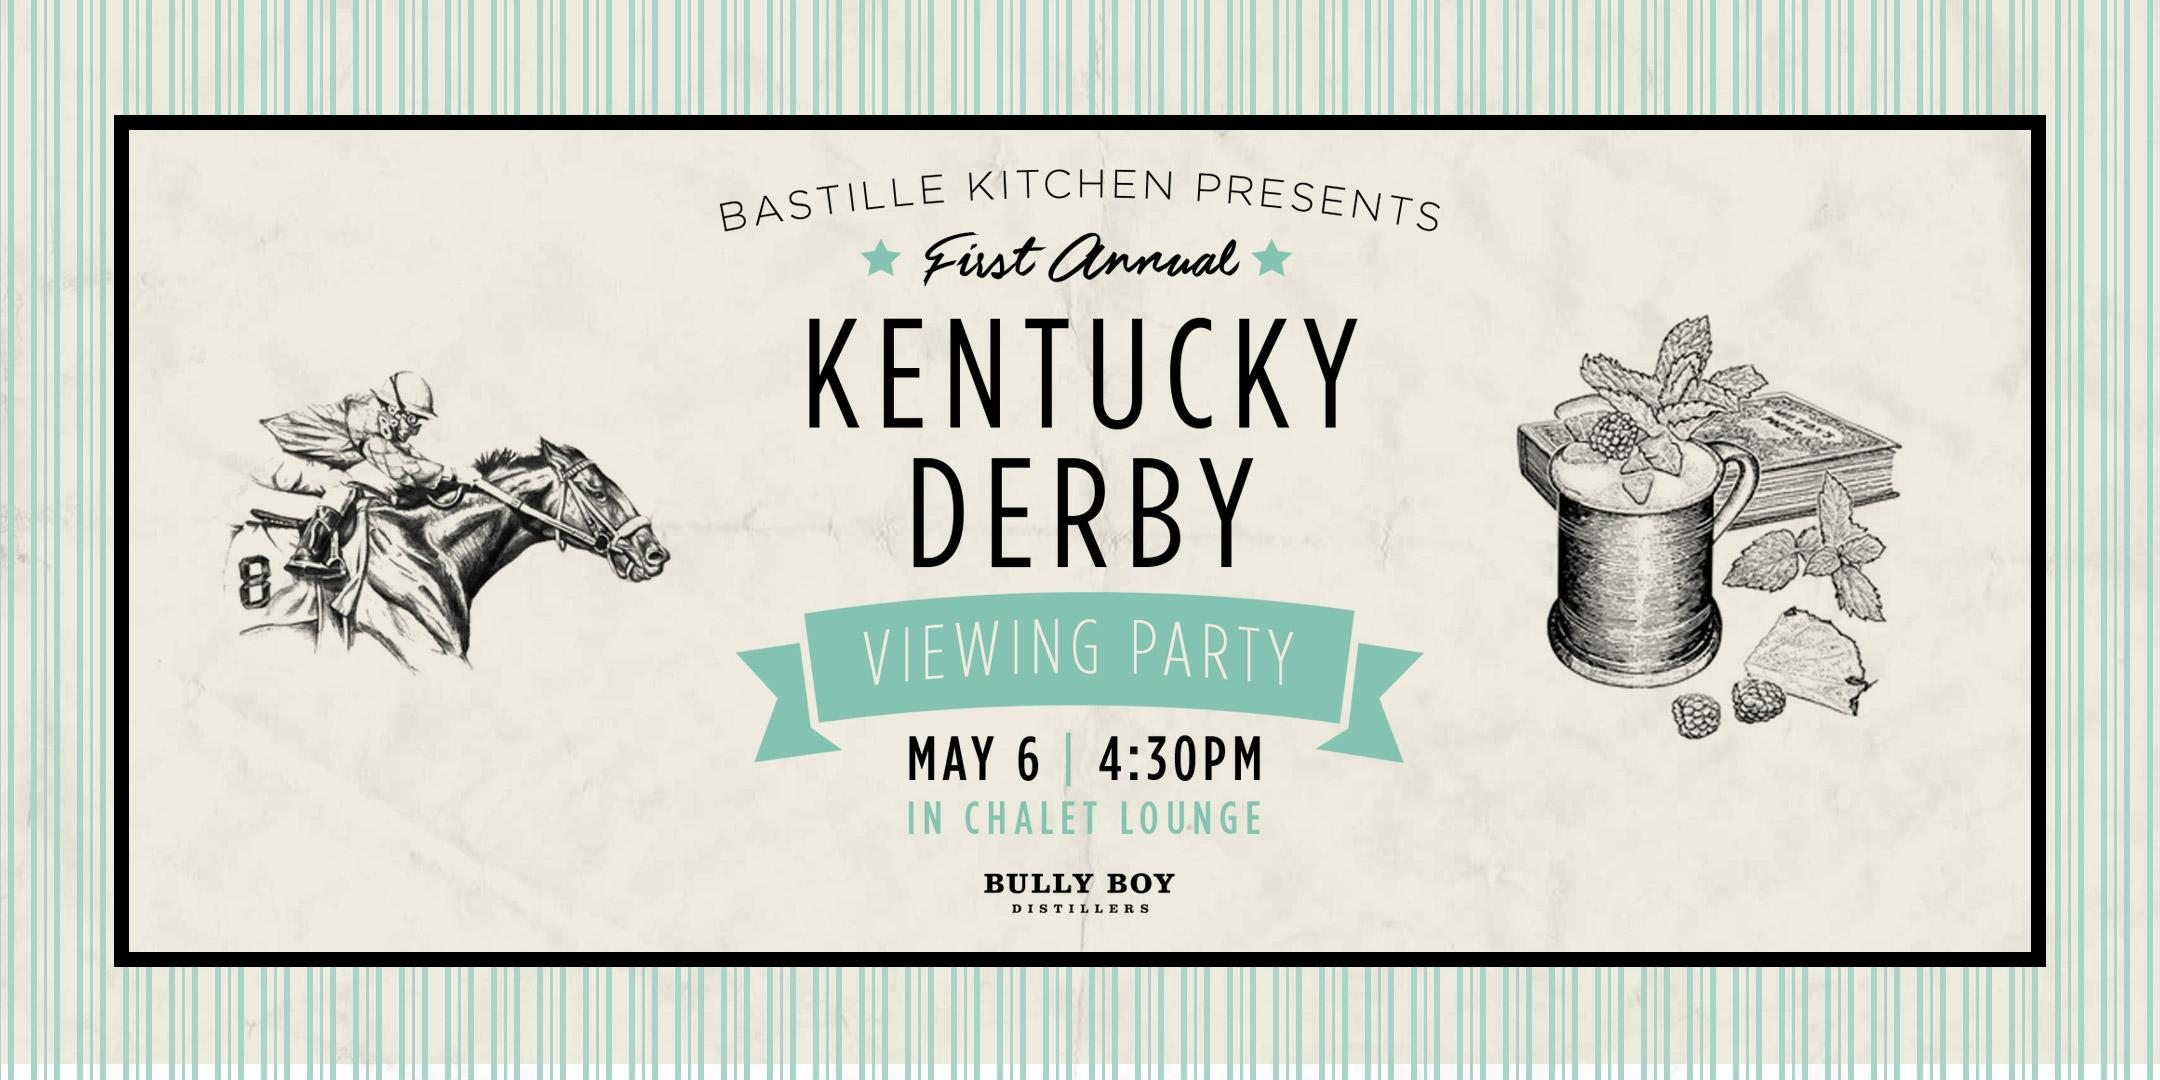 kentucky derby viewing party bastille kitchen boston 6 may 2017